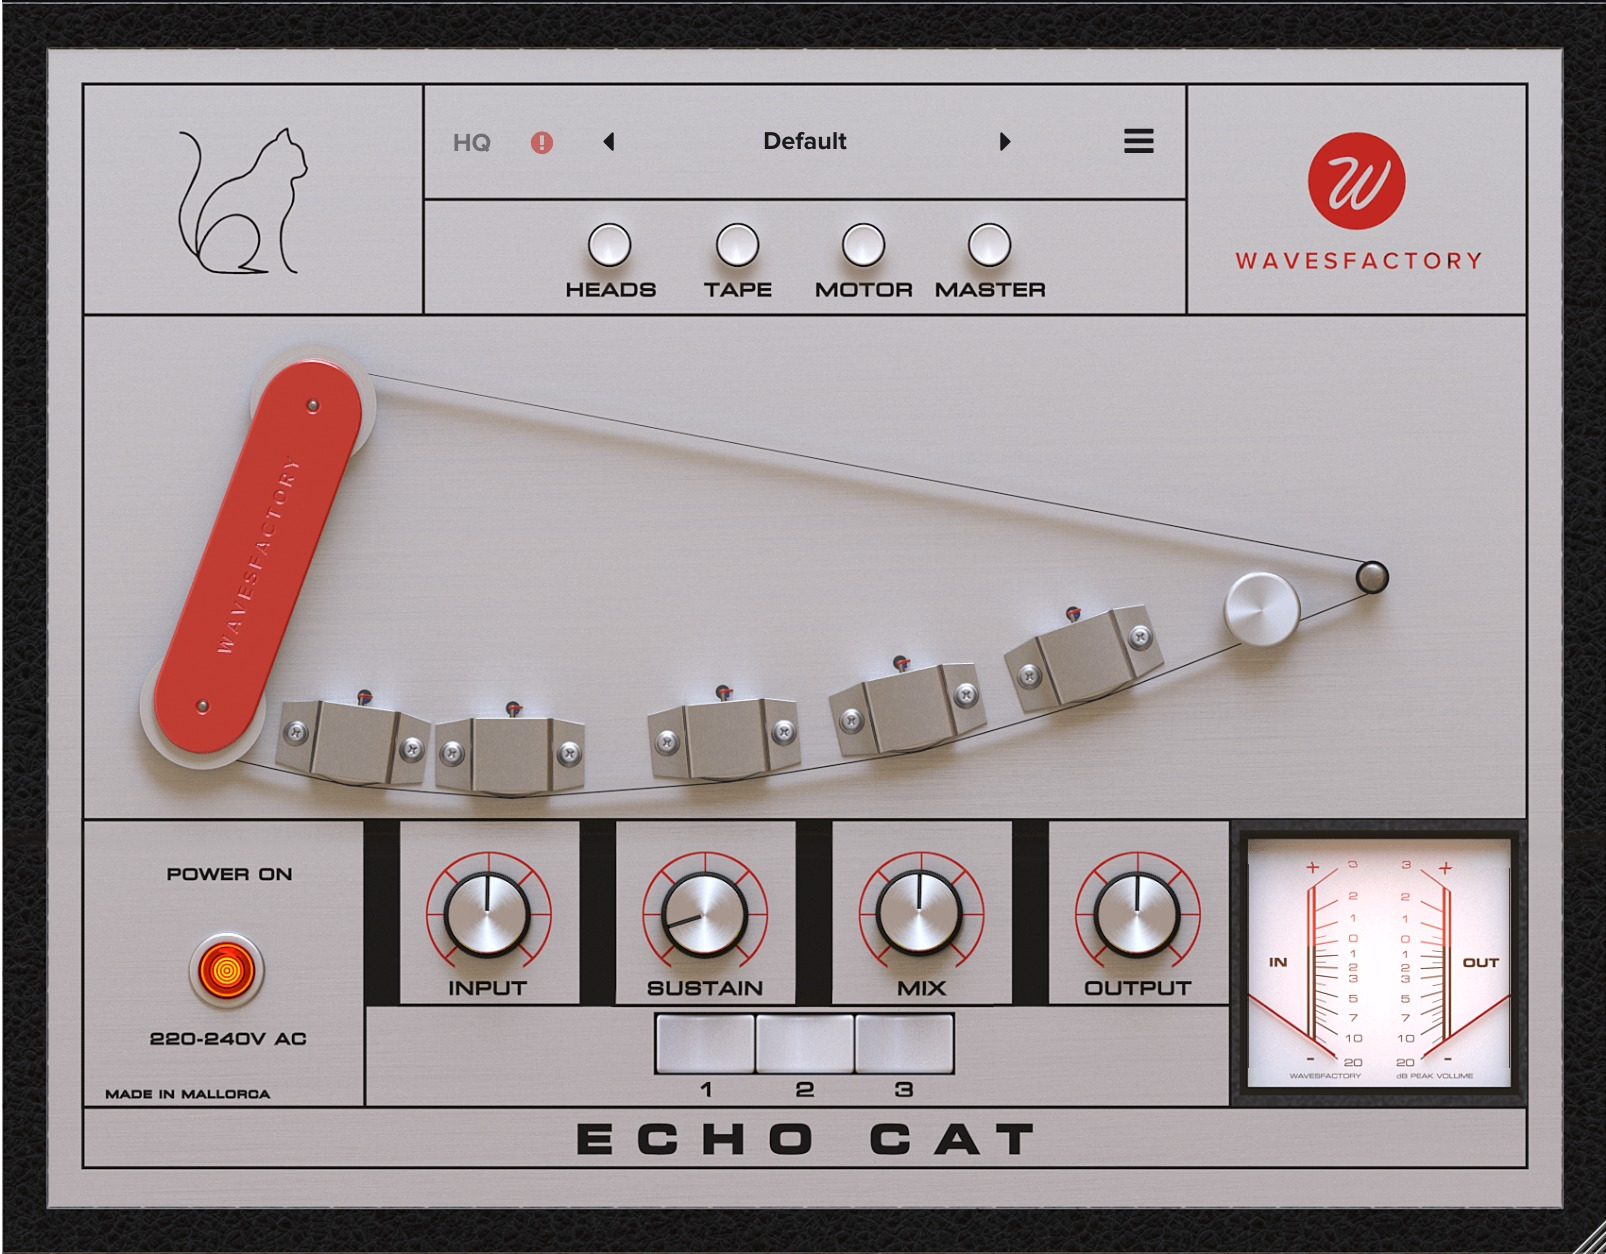 Wavesfactory Echo Cat Preset Sounds